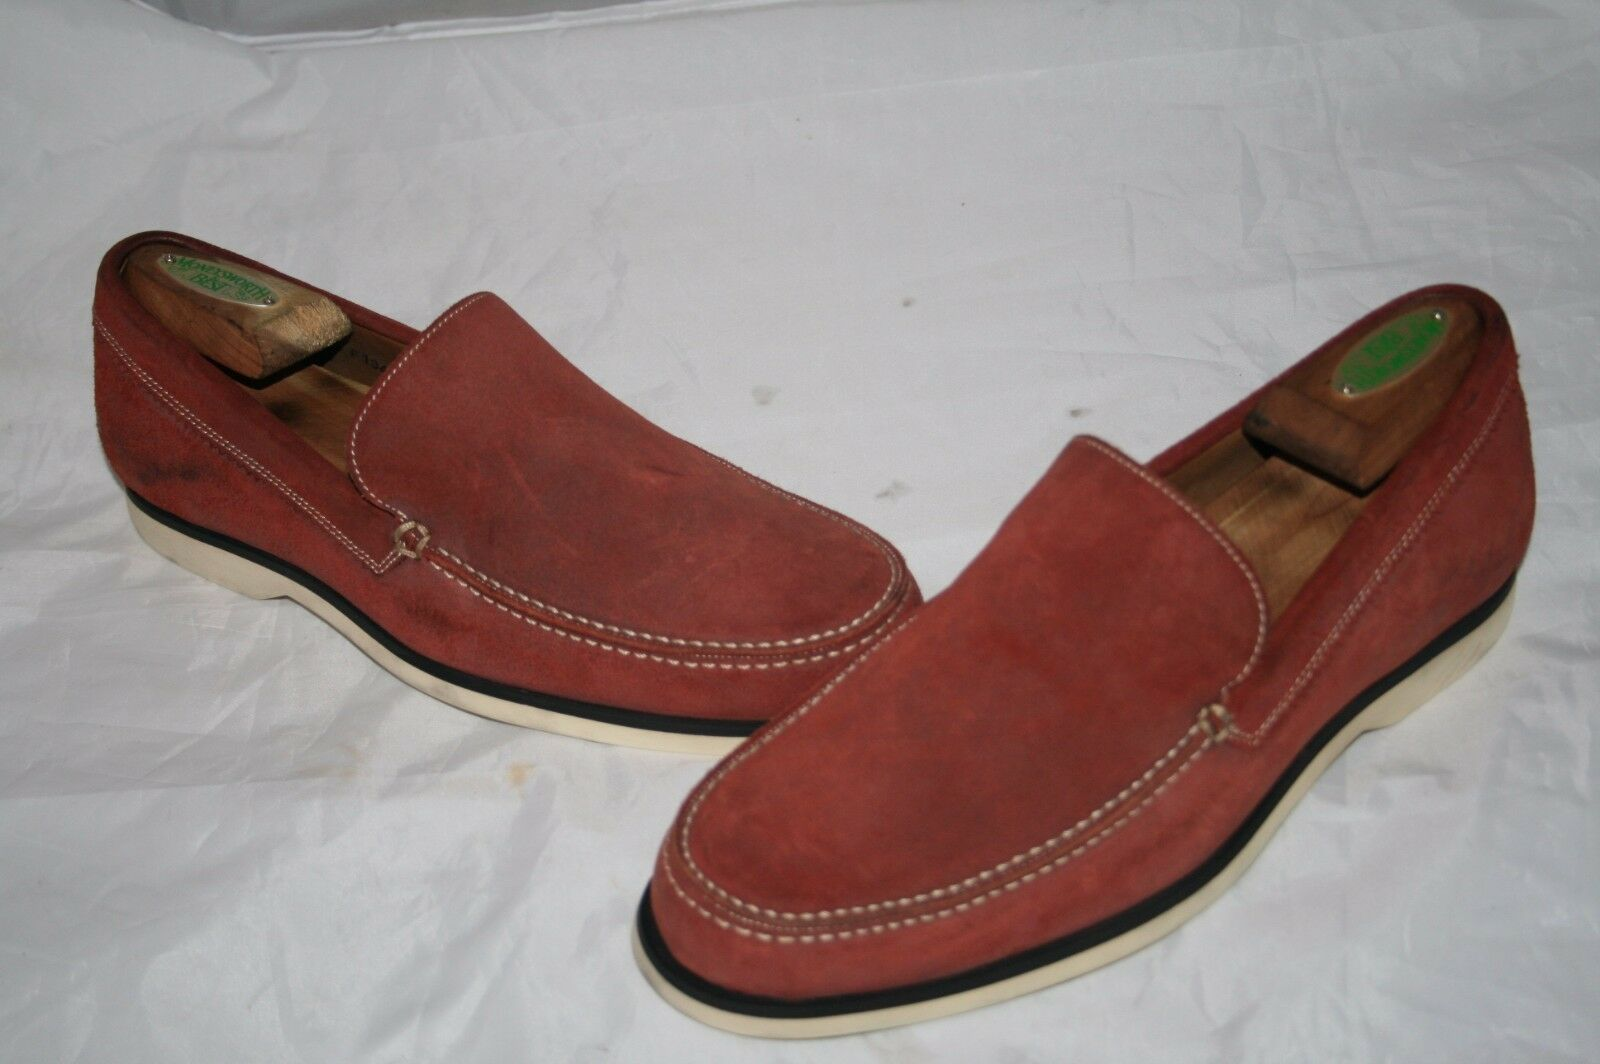 John Varvatos Monaco Suede Red Boat Loafers shoes Size 8 g14